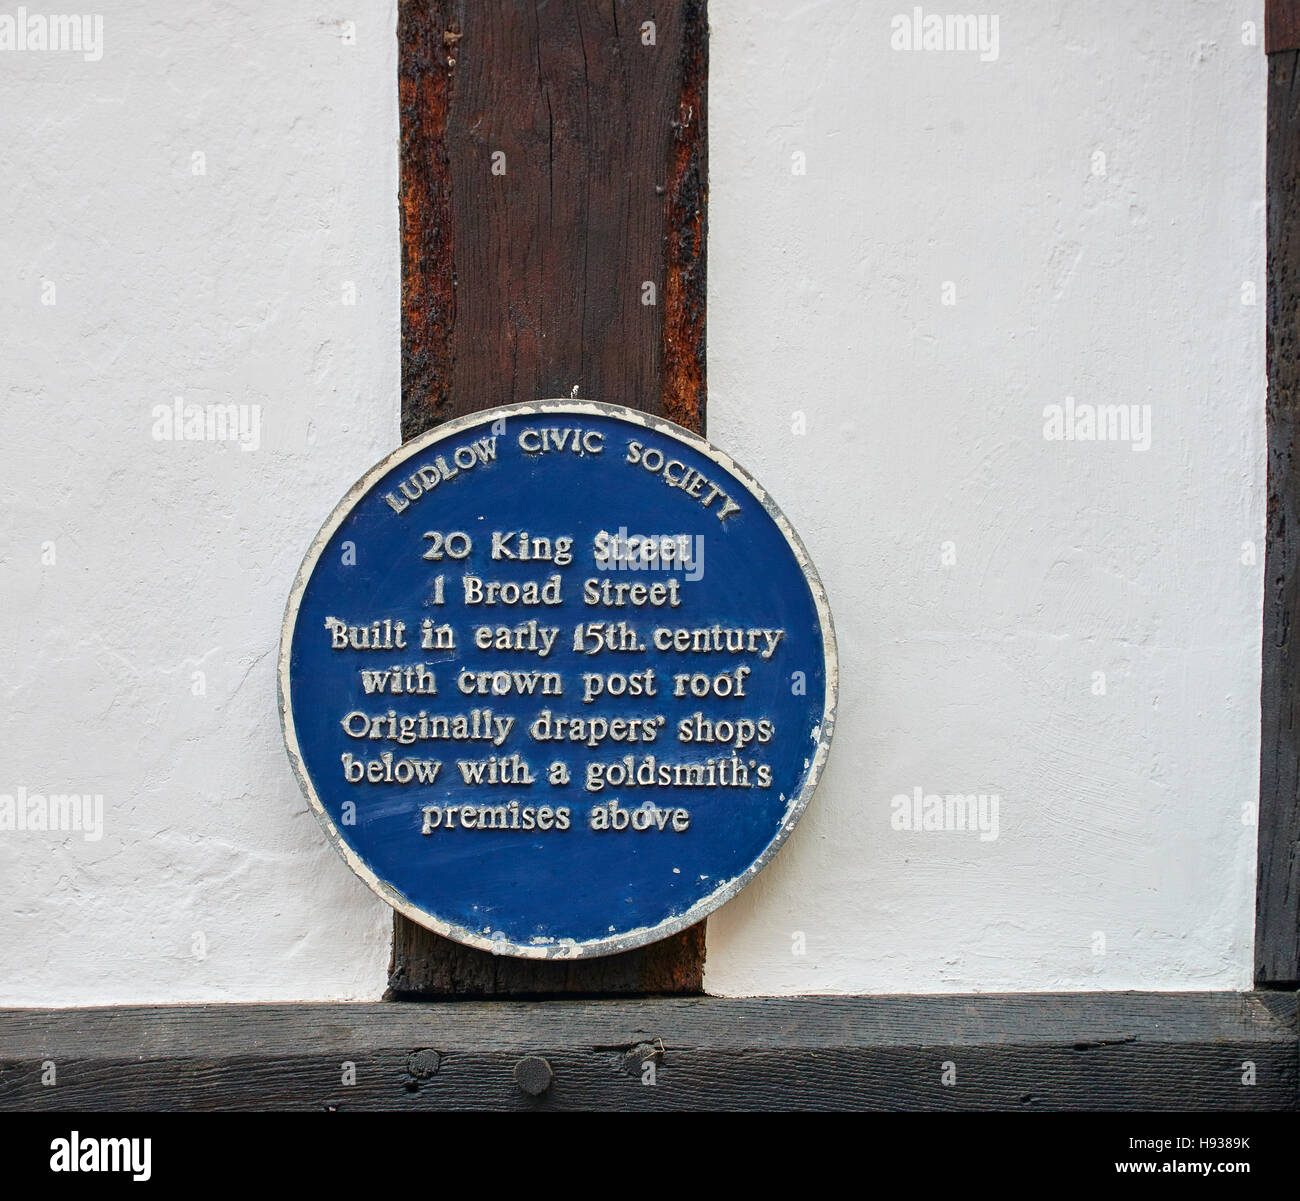 A Ludlow Civic Society Blue Plaque outlines the History of the premises on King Street and Broad Street. - Stock Image